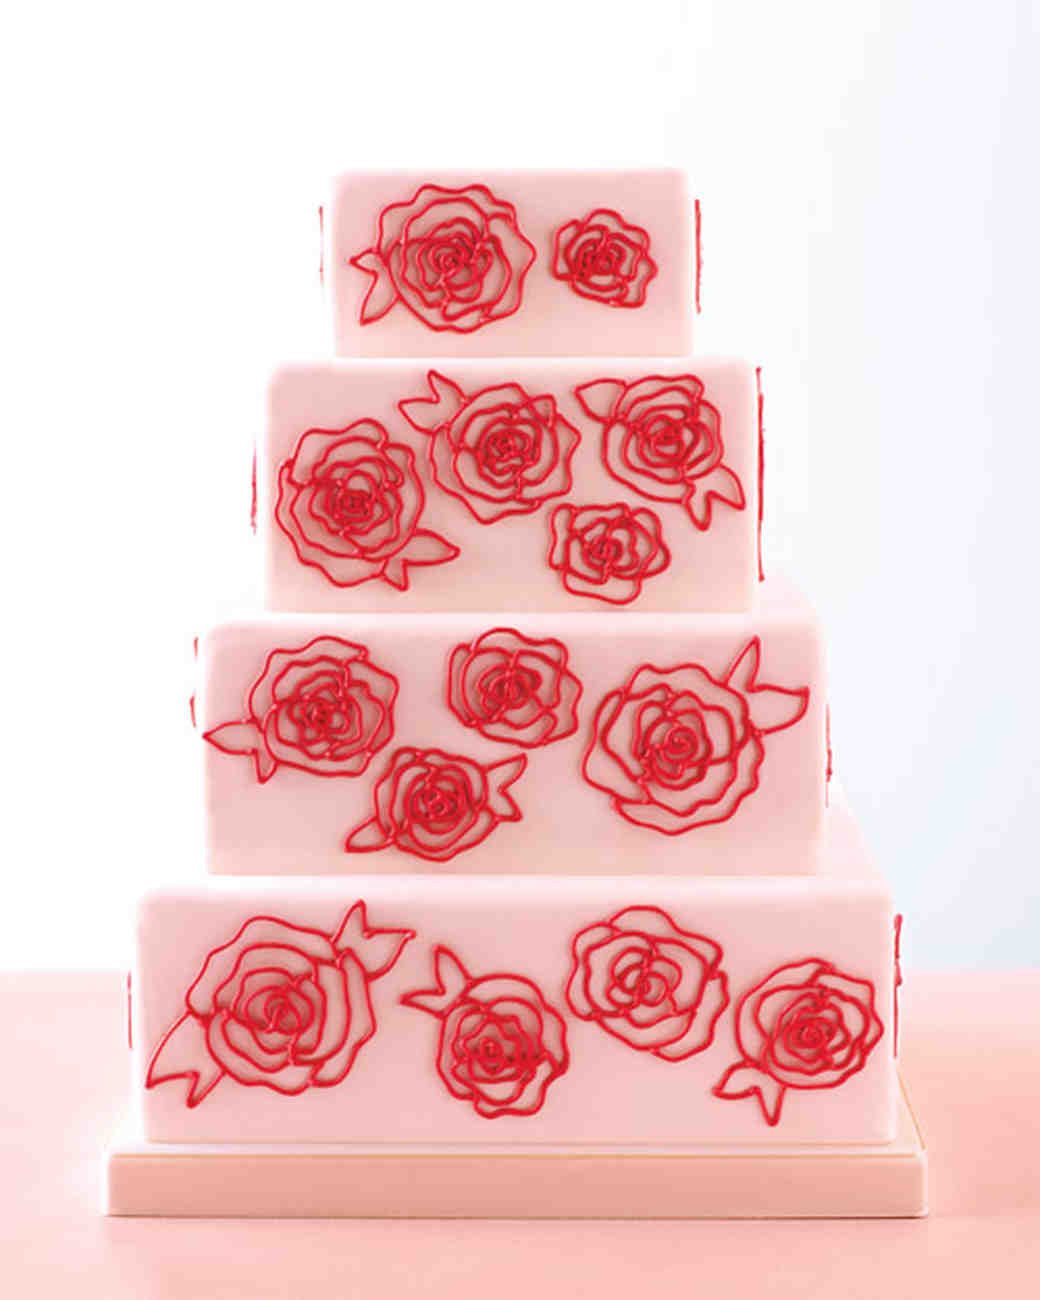 rose-piped wedding cake